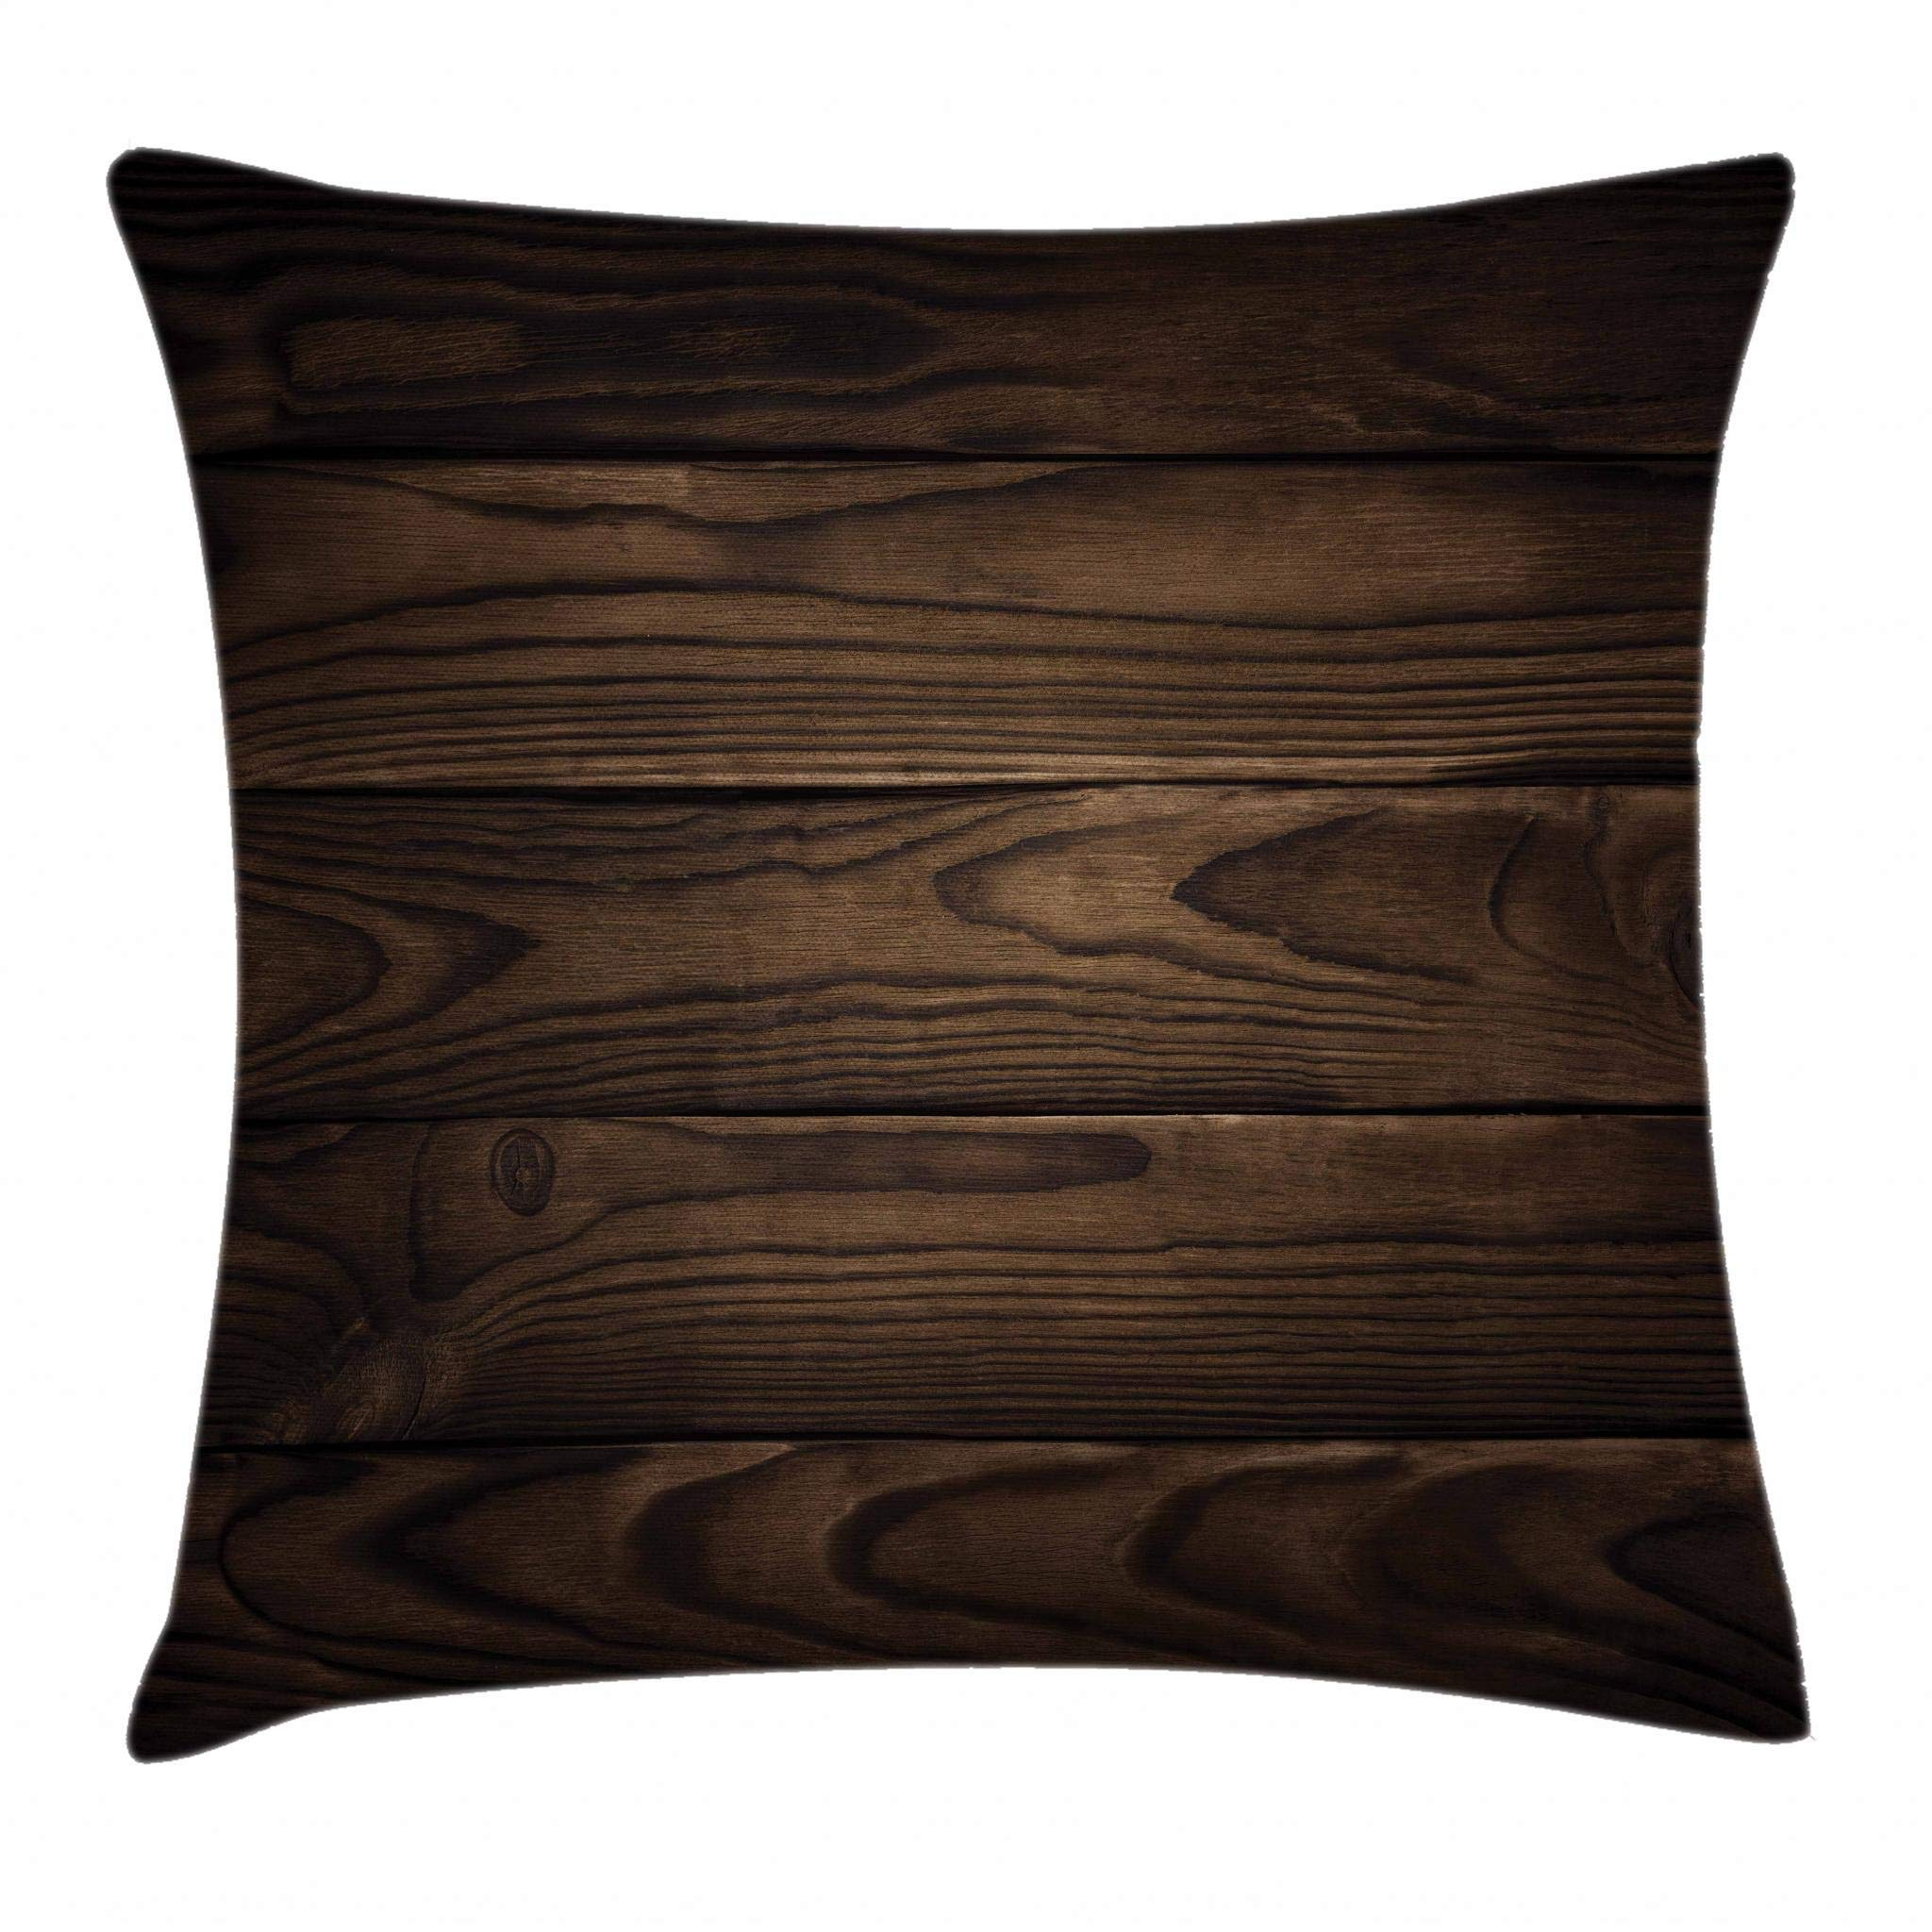 Ambesonne Chocolate Throw Pillow Cushion Cover, Vintage Rustic Illustration of Detailed Hardwood Floor Design Carpentry Themed Pattern, Decorative Square Accent Pillow Case, 26 X 16 Inches, Brown